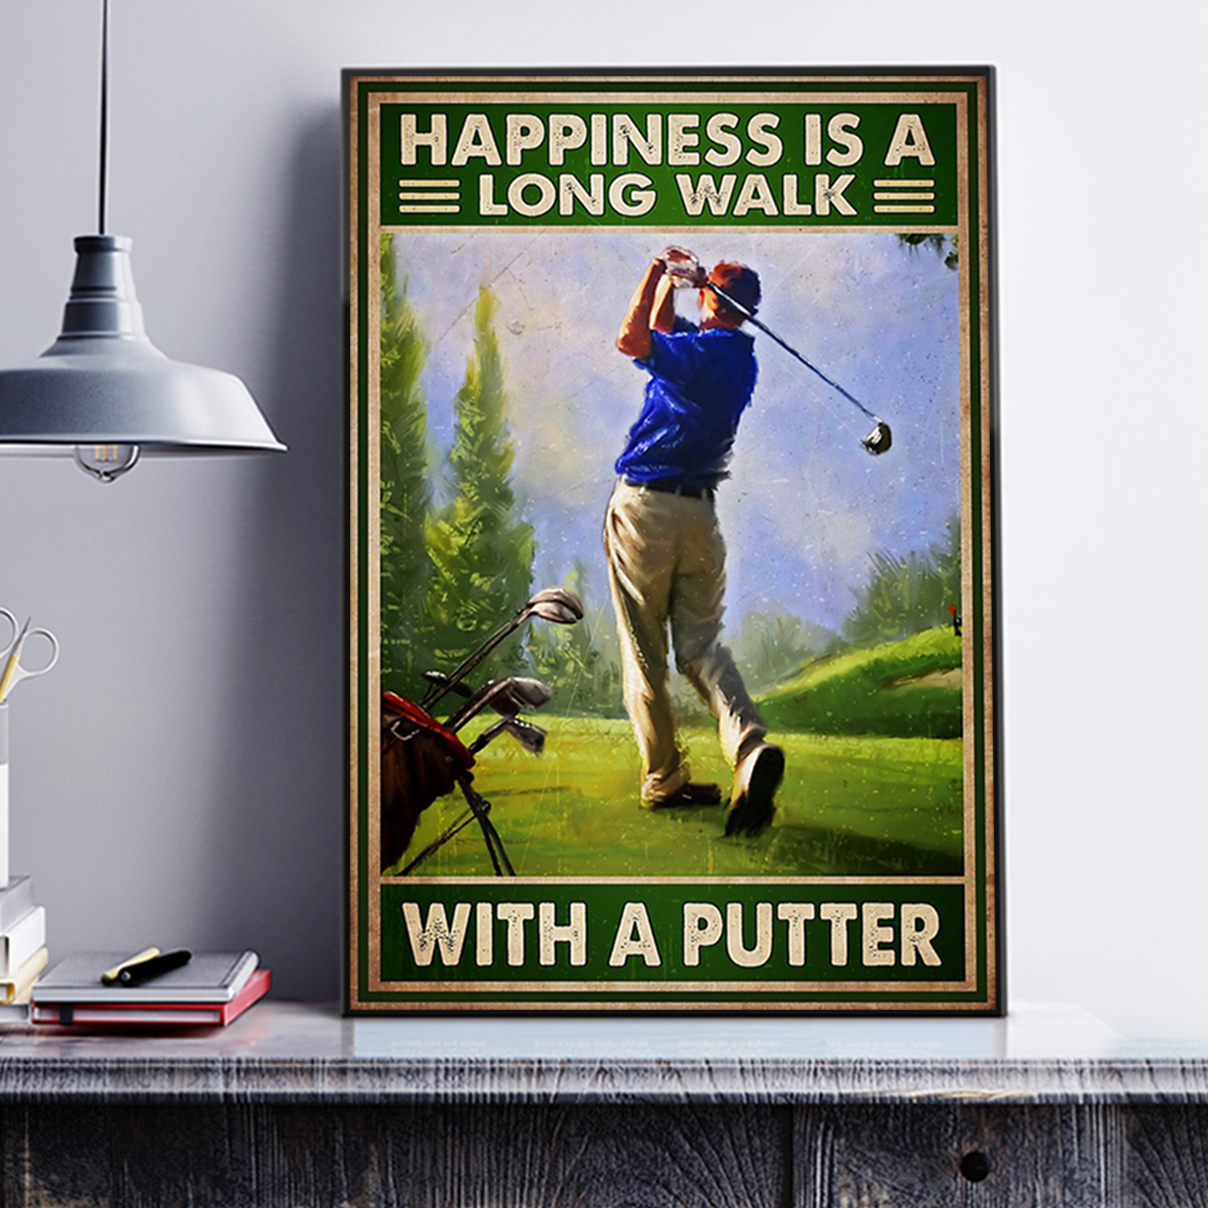 Happiness is a long walk with a putter poster A1